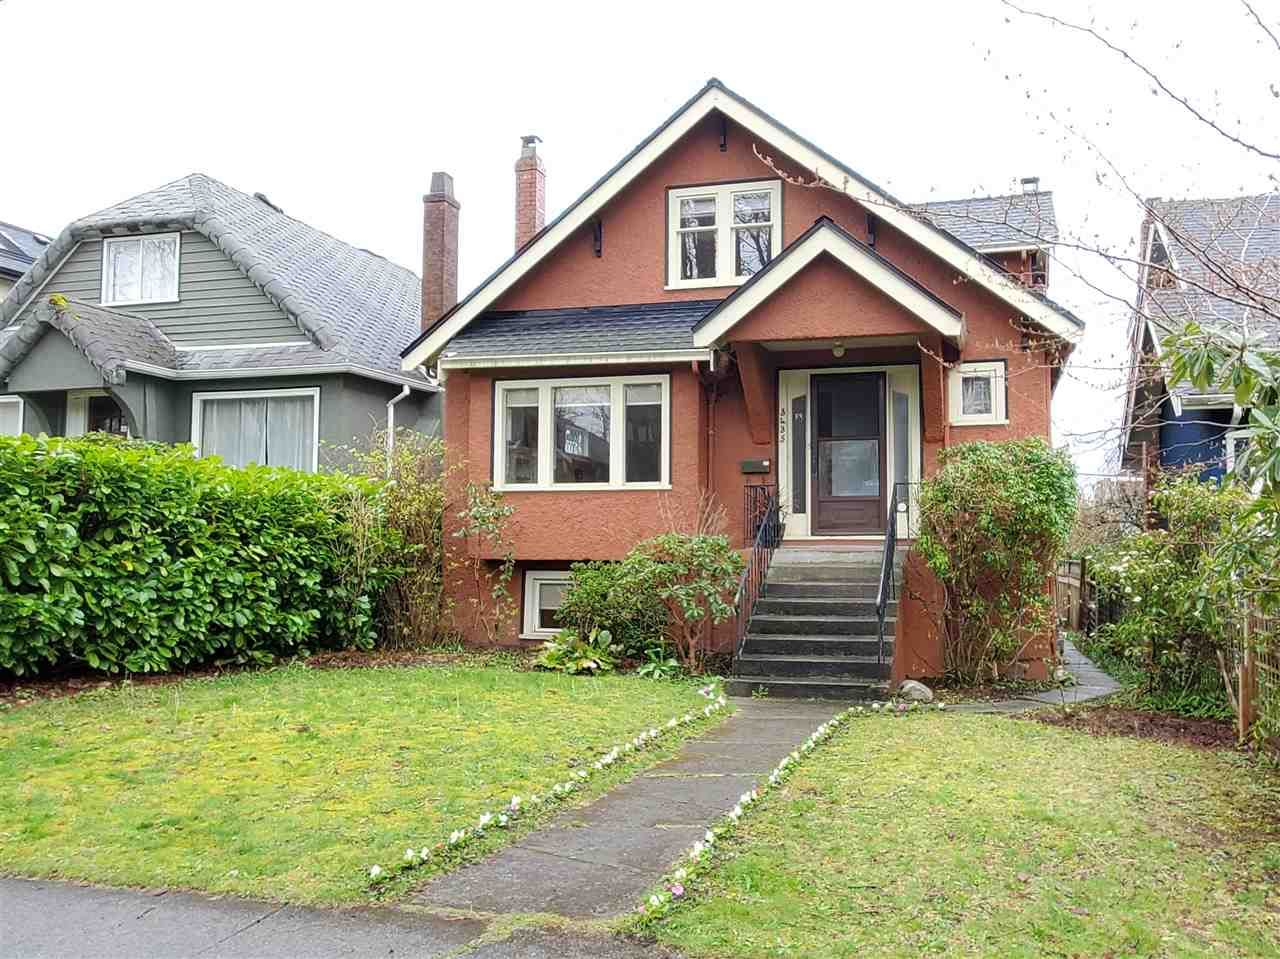 Main Photo: 3435 W 19TH Avenue in Vancouver: Dunbar House for sale (Vancouver West)  : MLS®# R2563128